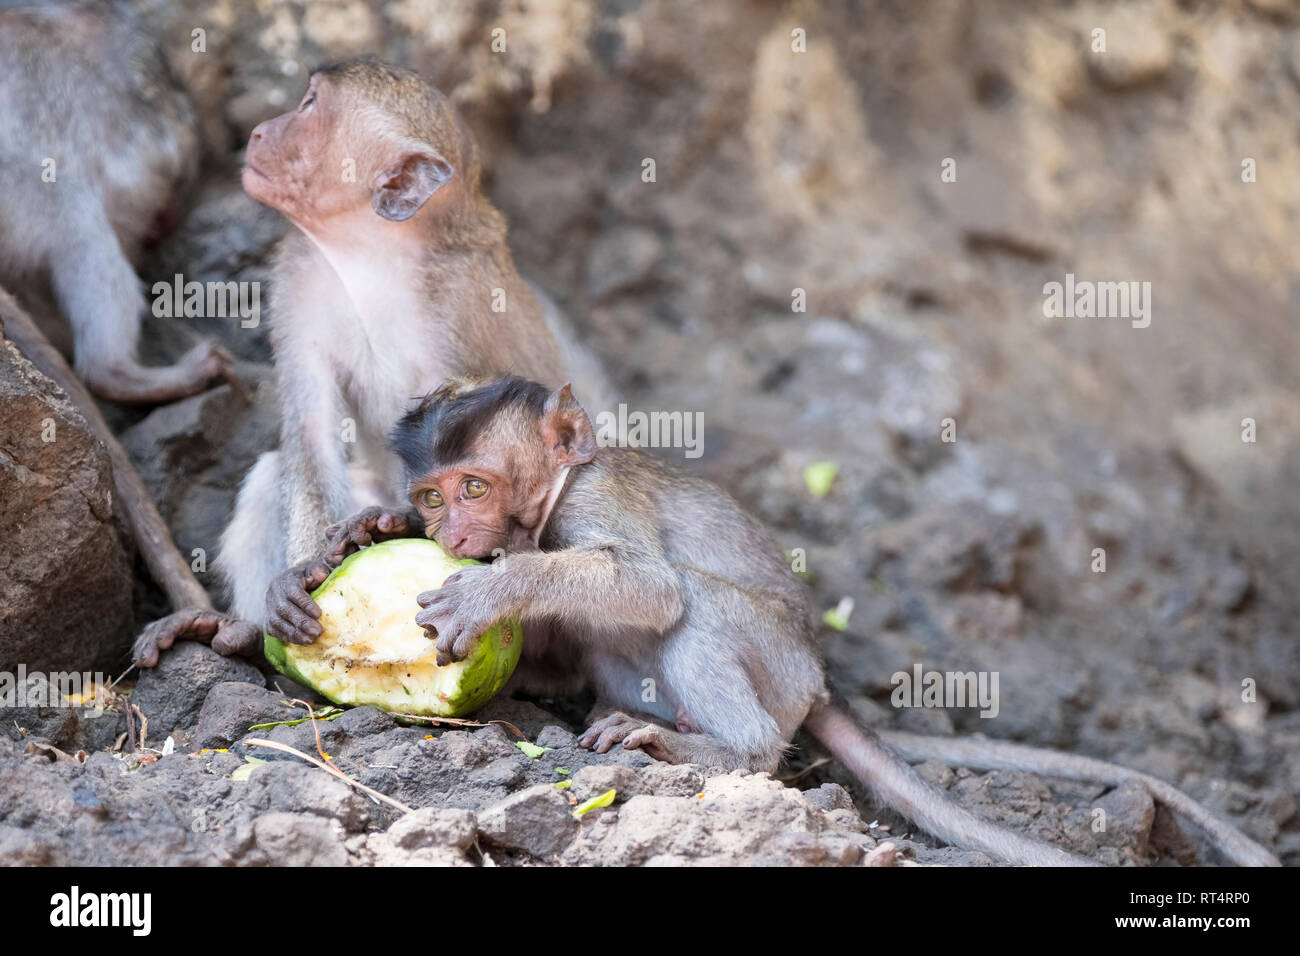 Crab-eating macaque (Macaca fascicularis), eats leaves from tree, Bali, Indonesia Stock Photo